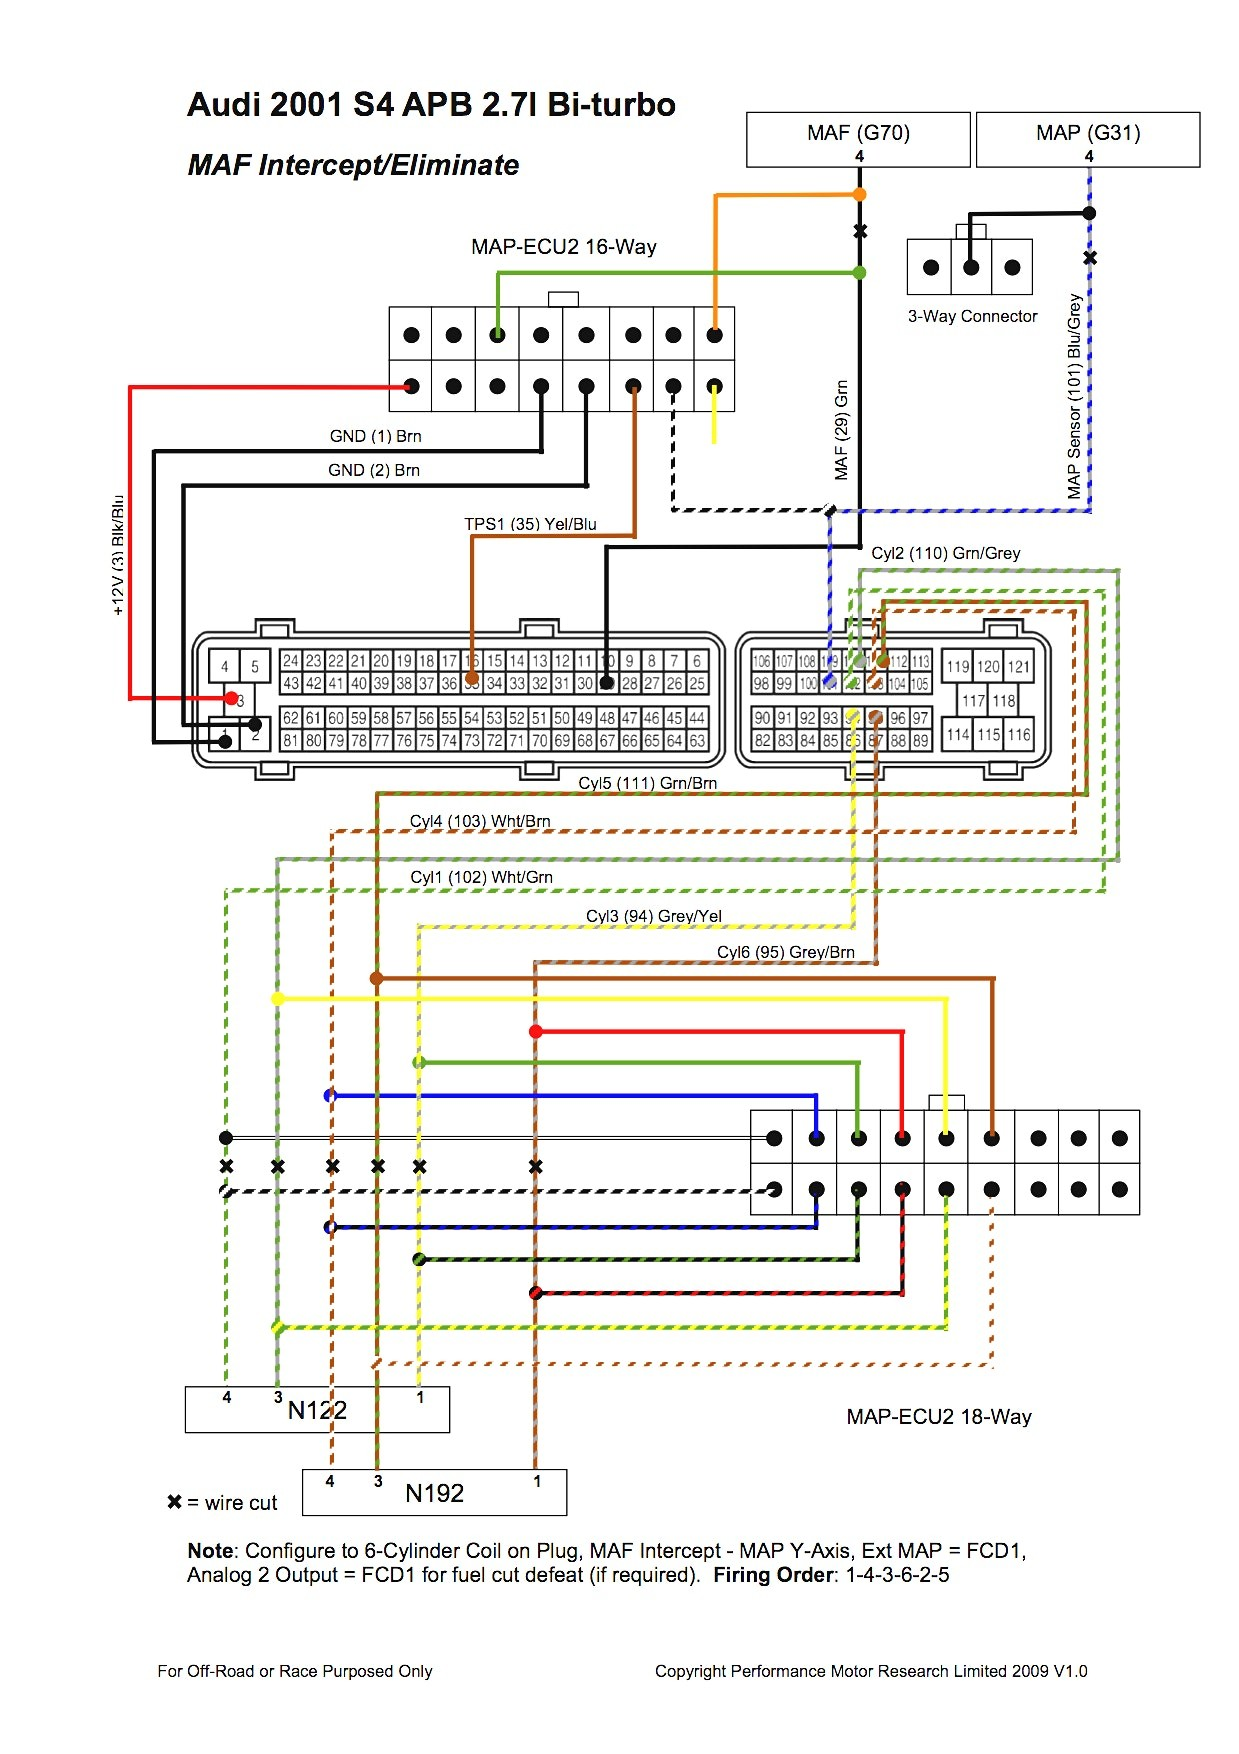 Monsoon 96180 26900 Radio Wiring Diagram Trusted Wiring Diagram 00  Bonneville Stereo Wiring Diagram Jetta Monsoon Amp Wiring Diagram For Color